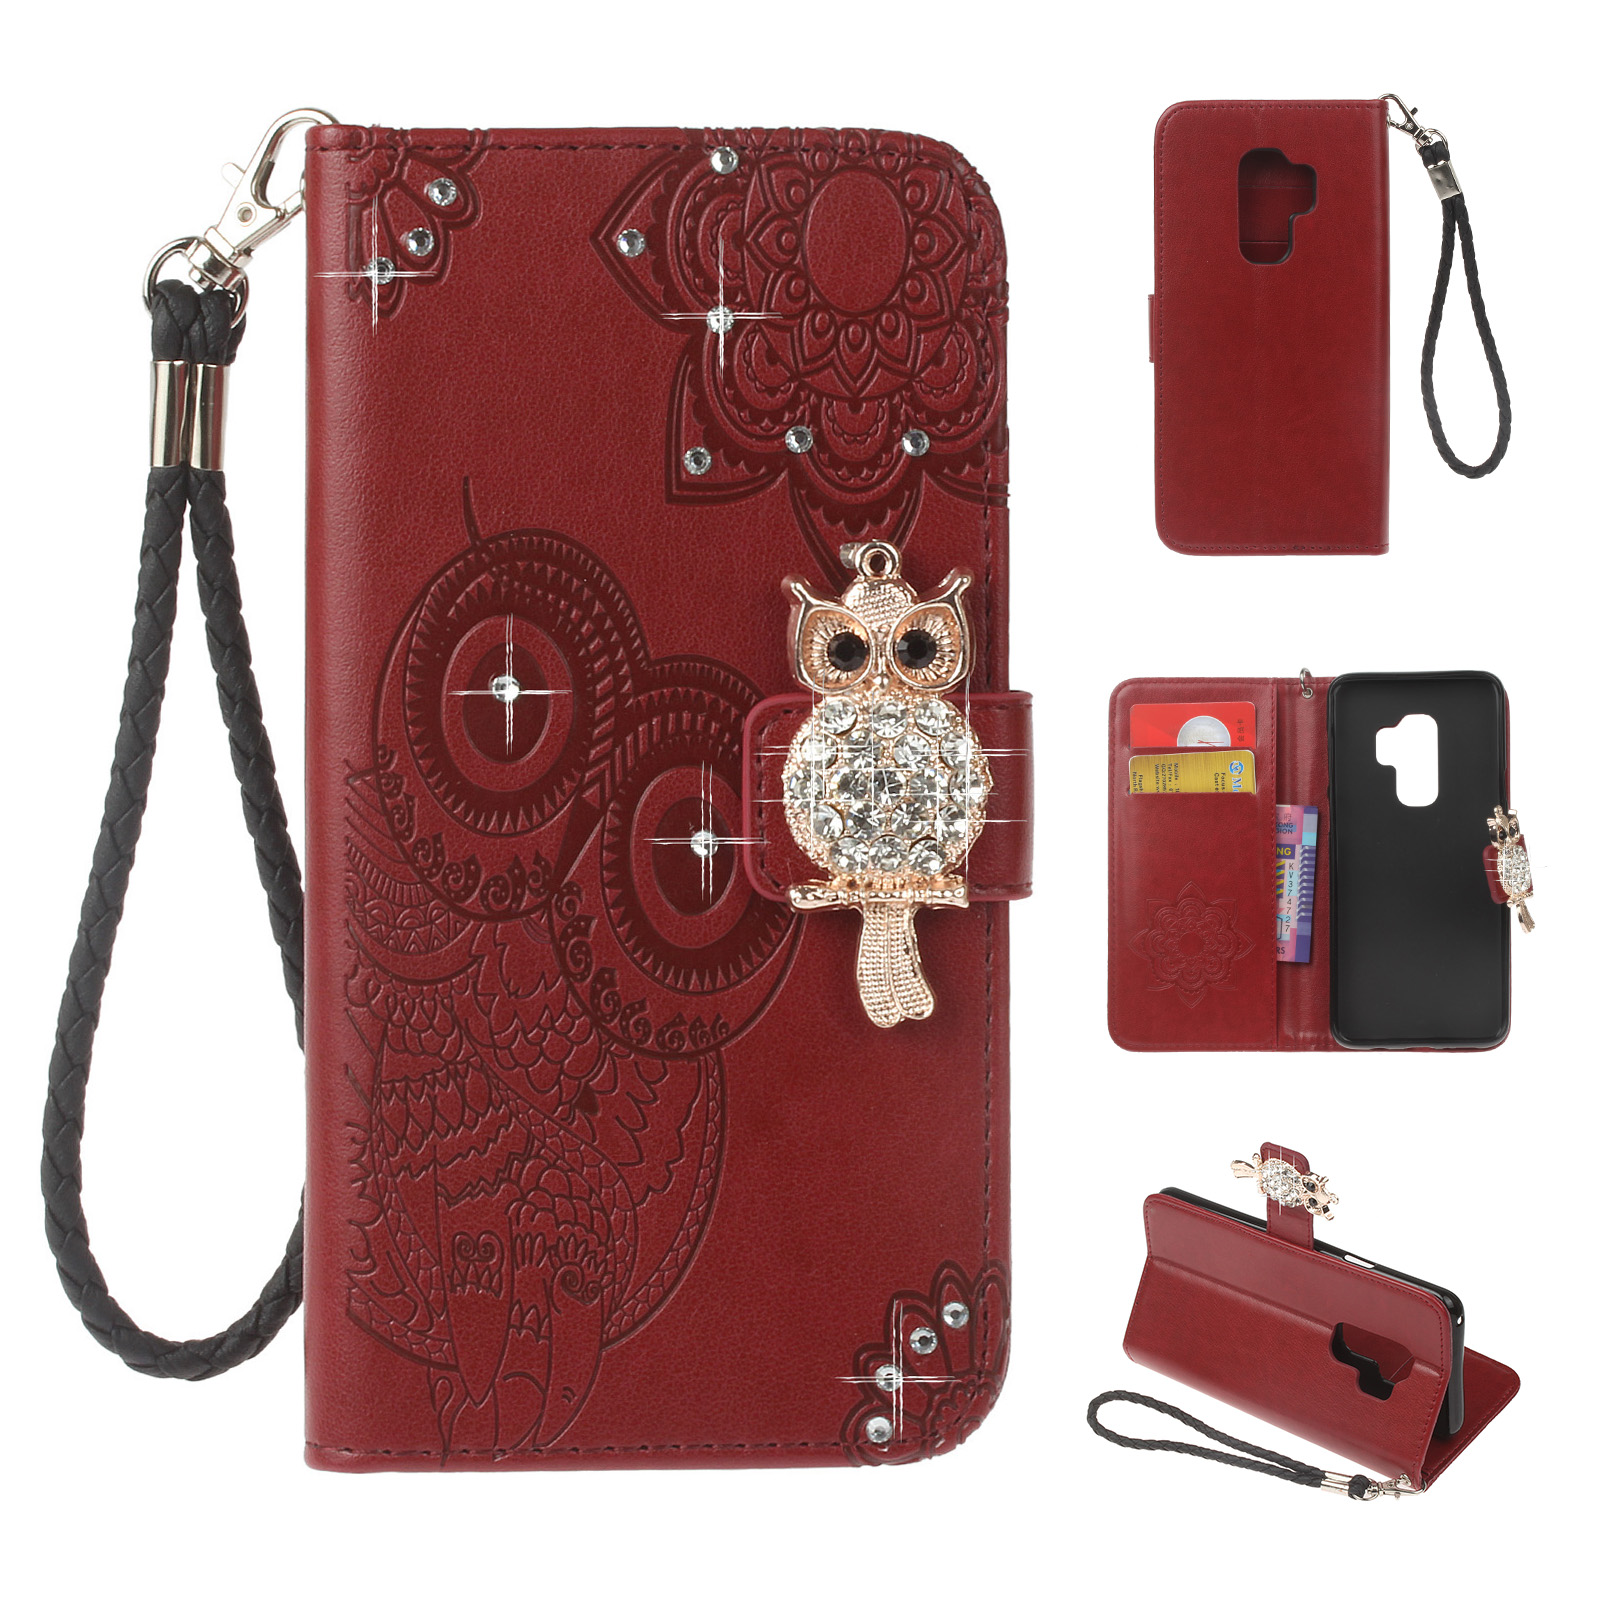 Galaxy S9 Case, Allytech Premium Leather Glitter Owl Kickstand Folio Hand Strap Women Girls Magnetic Closure Shockproof Cards Holder Wallet Case Cover for Samsung Galaxy S9, Winered